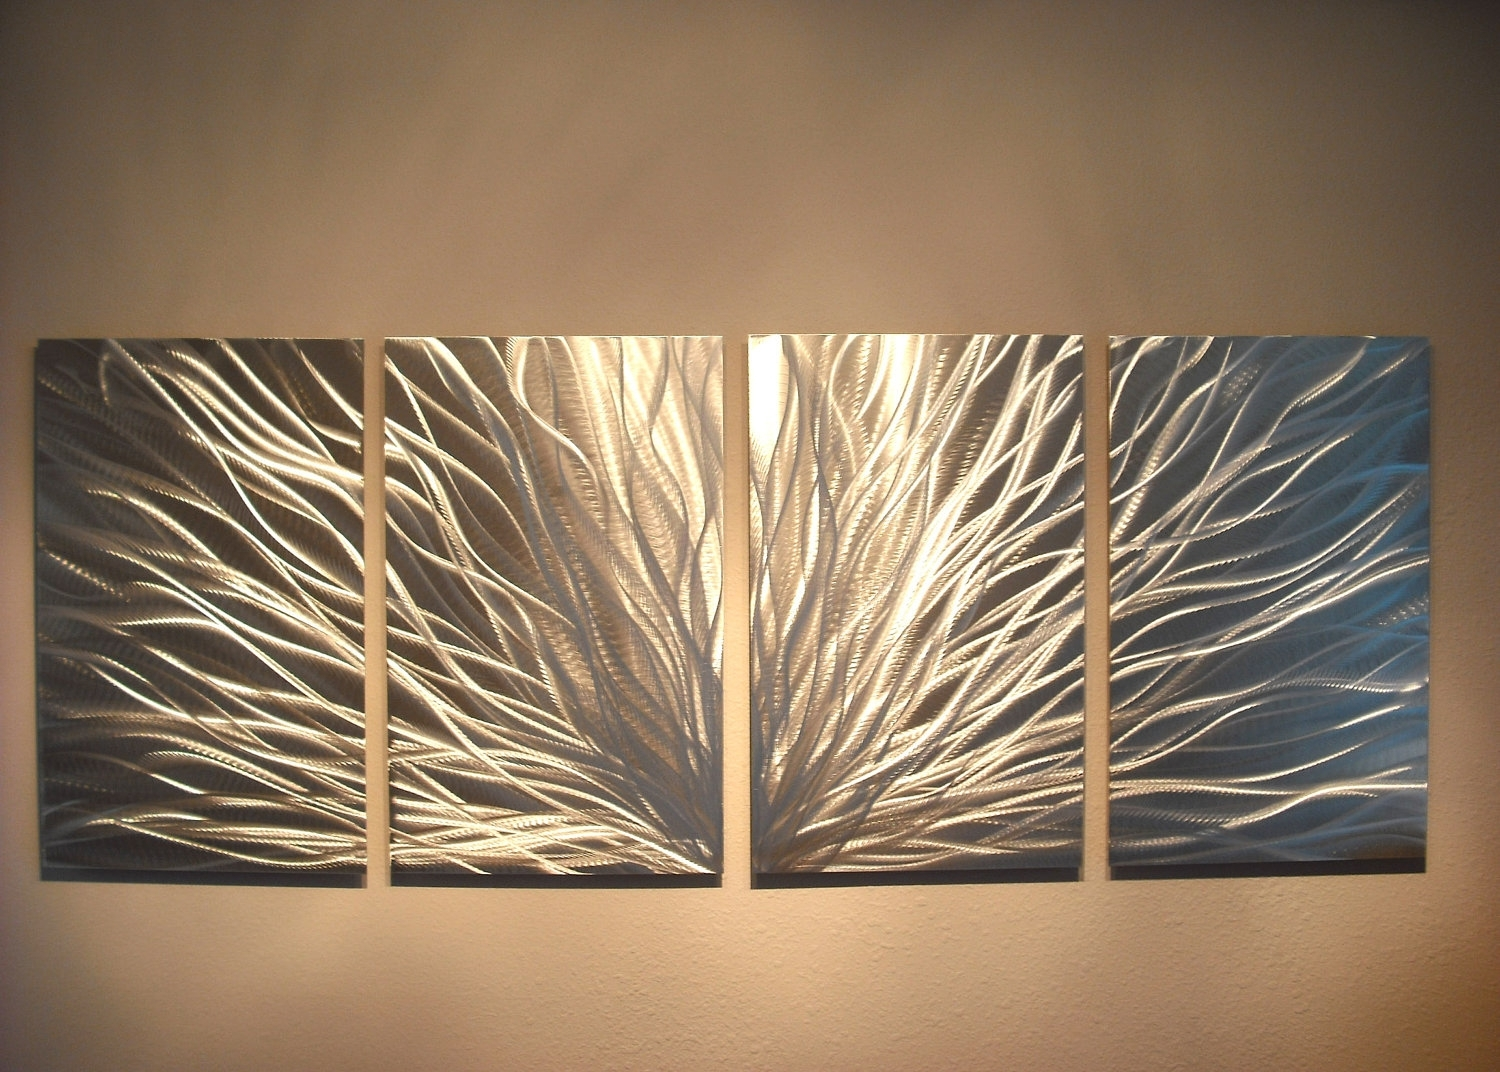 Radiance – Abstract Metal Wall Art Contemporary Modern Decor In Most Current Large Modern Fabric Wall Art (View 11 of 15)